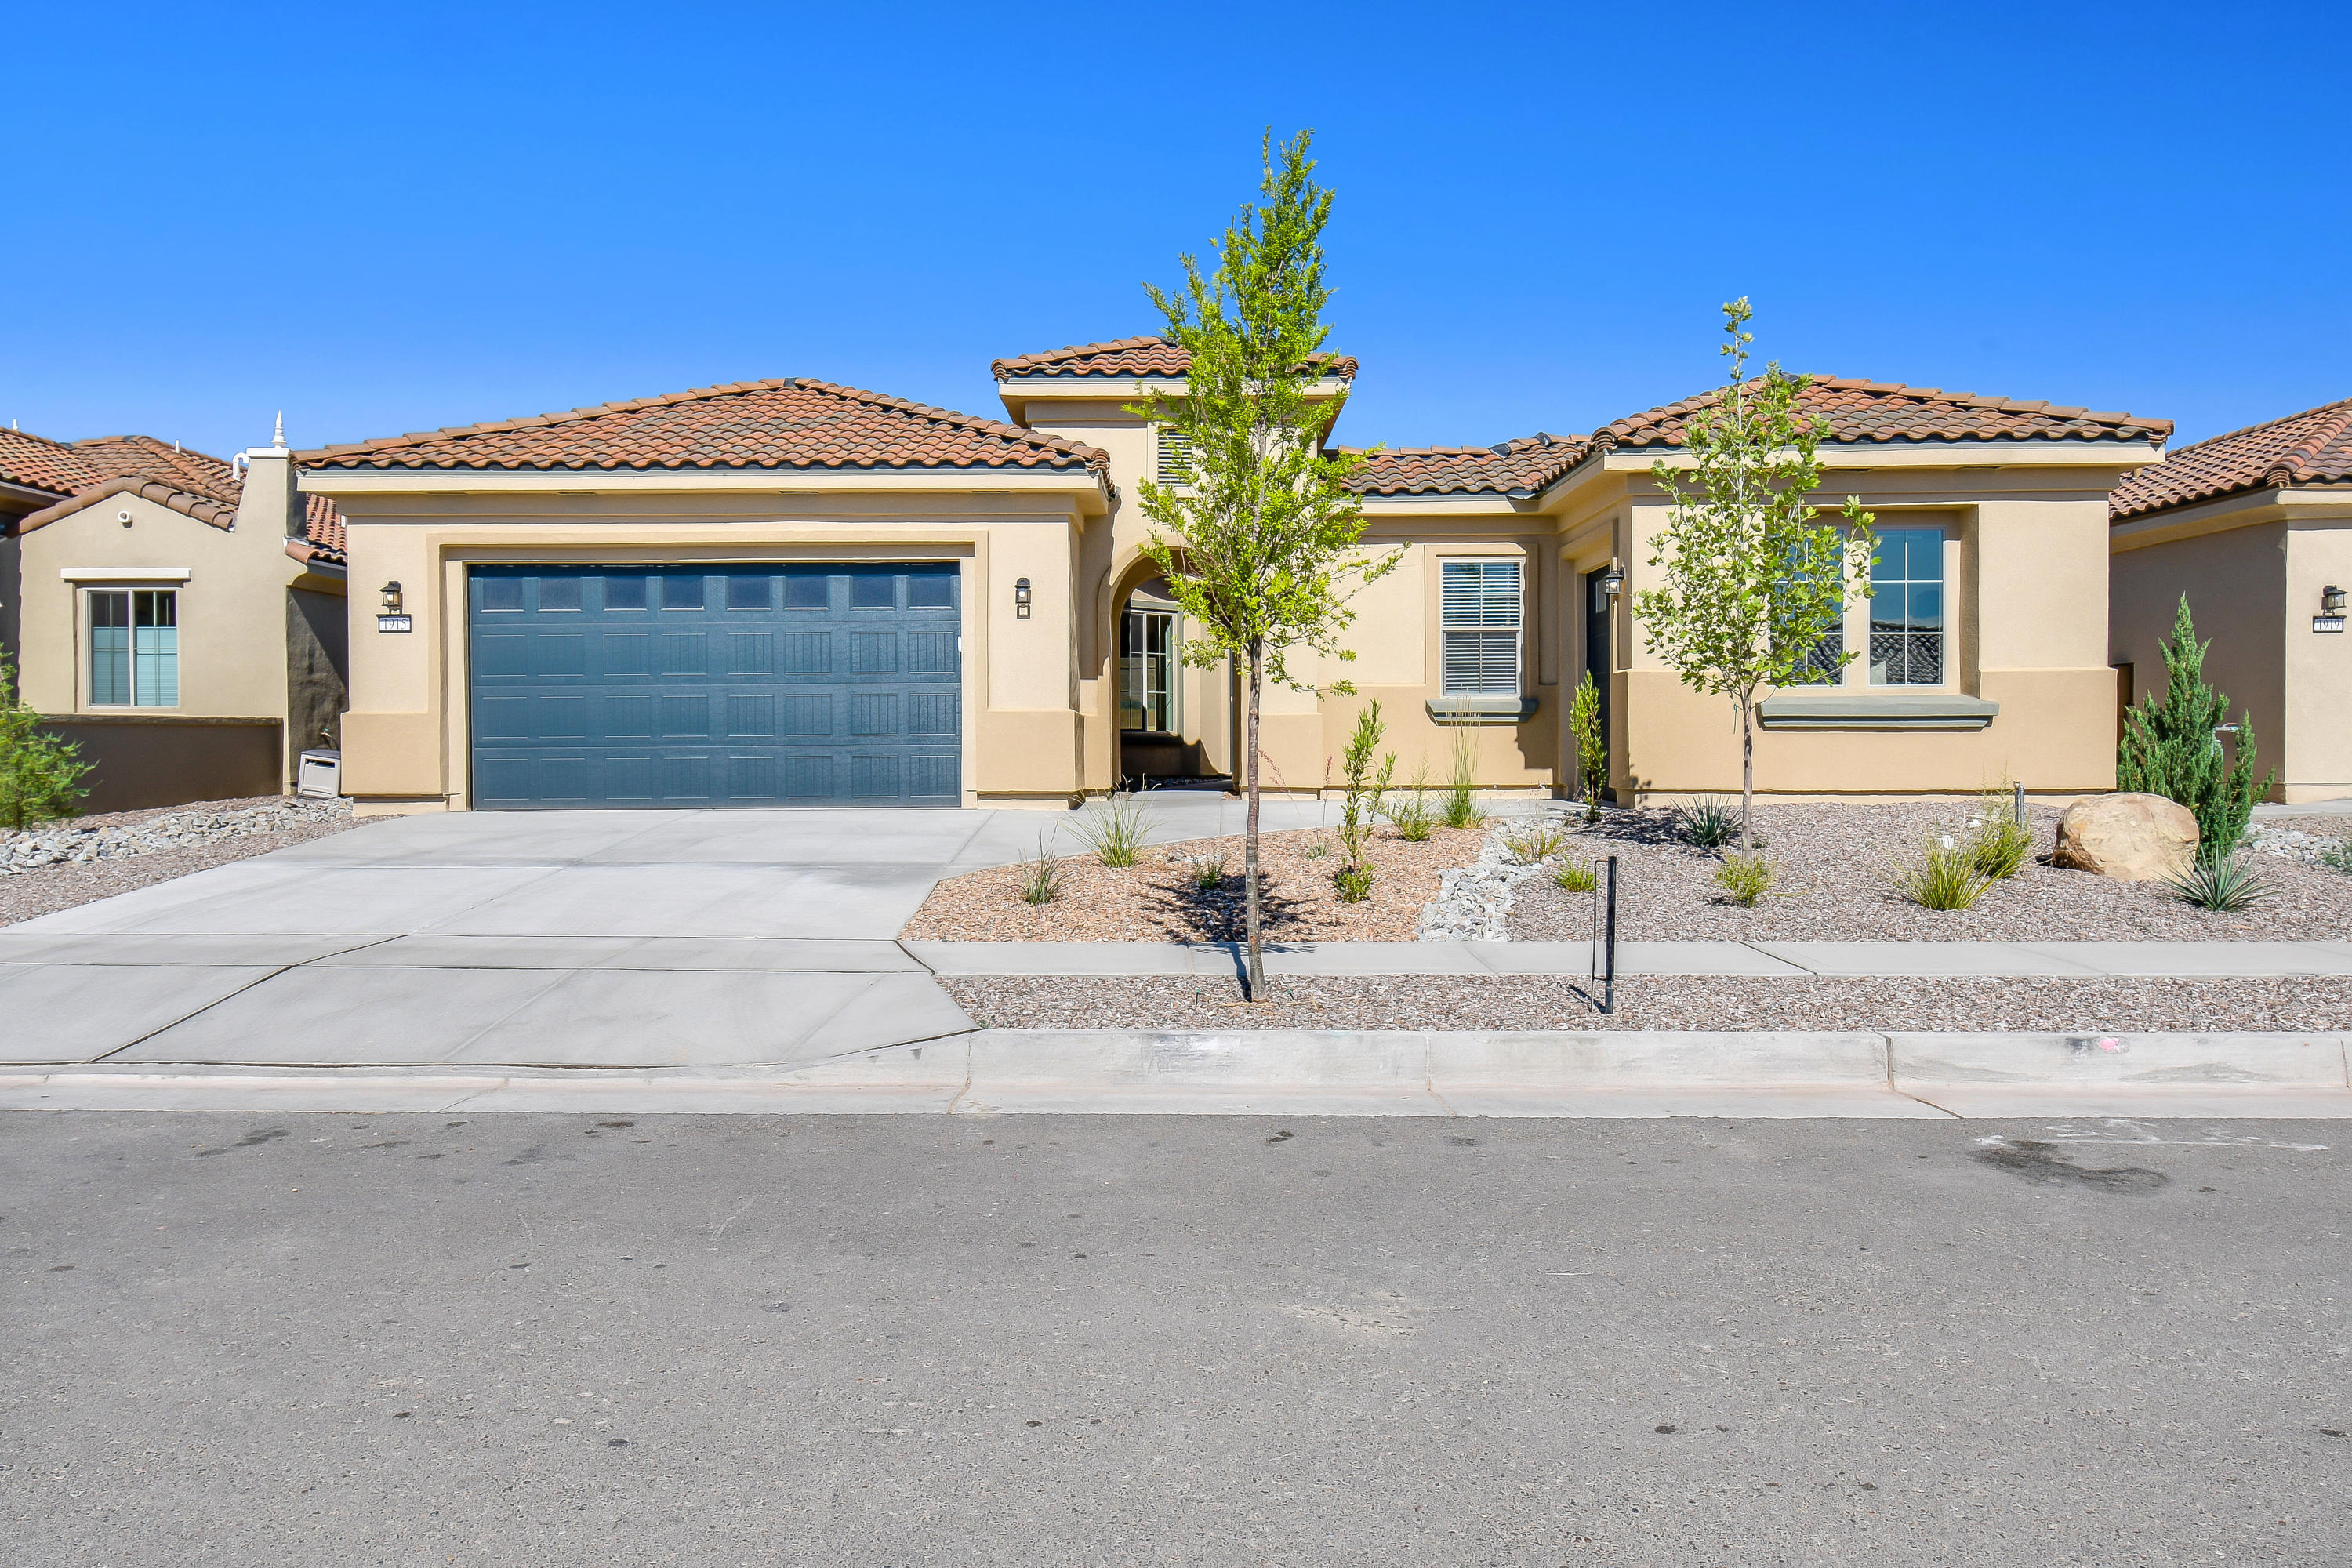 Welcome to this beautiful, newly constructed home in  Mirehaven by Del Webb. This home features 2,618 sq ft, 2 bedrooms, a study, 2.5 baths,  & oversized 2 car garage. Home features plenty of natural lighting, spacious great room, formal dinning room, and a large and a large backyard. Wide Open floor-plan where Kitchen and breakfast nook open to the great room. Gourmet kitchen features large island, quartz countertops, decorative tile backsplash, stainless steel appliances, including built gas cooktop and oven . Master suite features a makeup vanity, roll in shower, & large closet! You'll love being apart of this 55+ community. You won't want to miss out on the junior Olympic size pool, spa, fitness & workout rooms, pickle ball courts & 6 1/2 miles of trails.